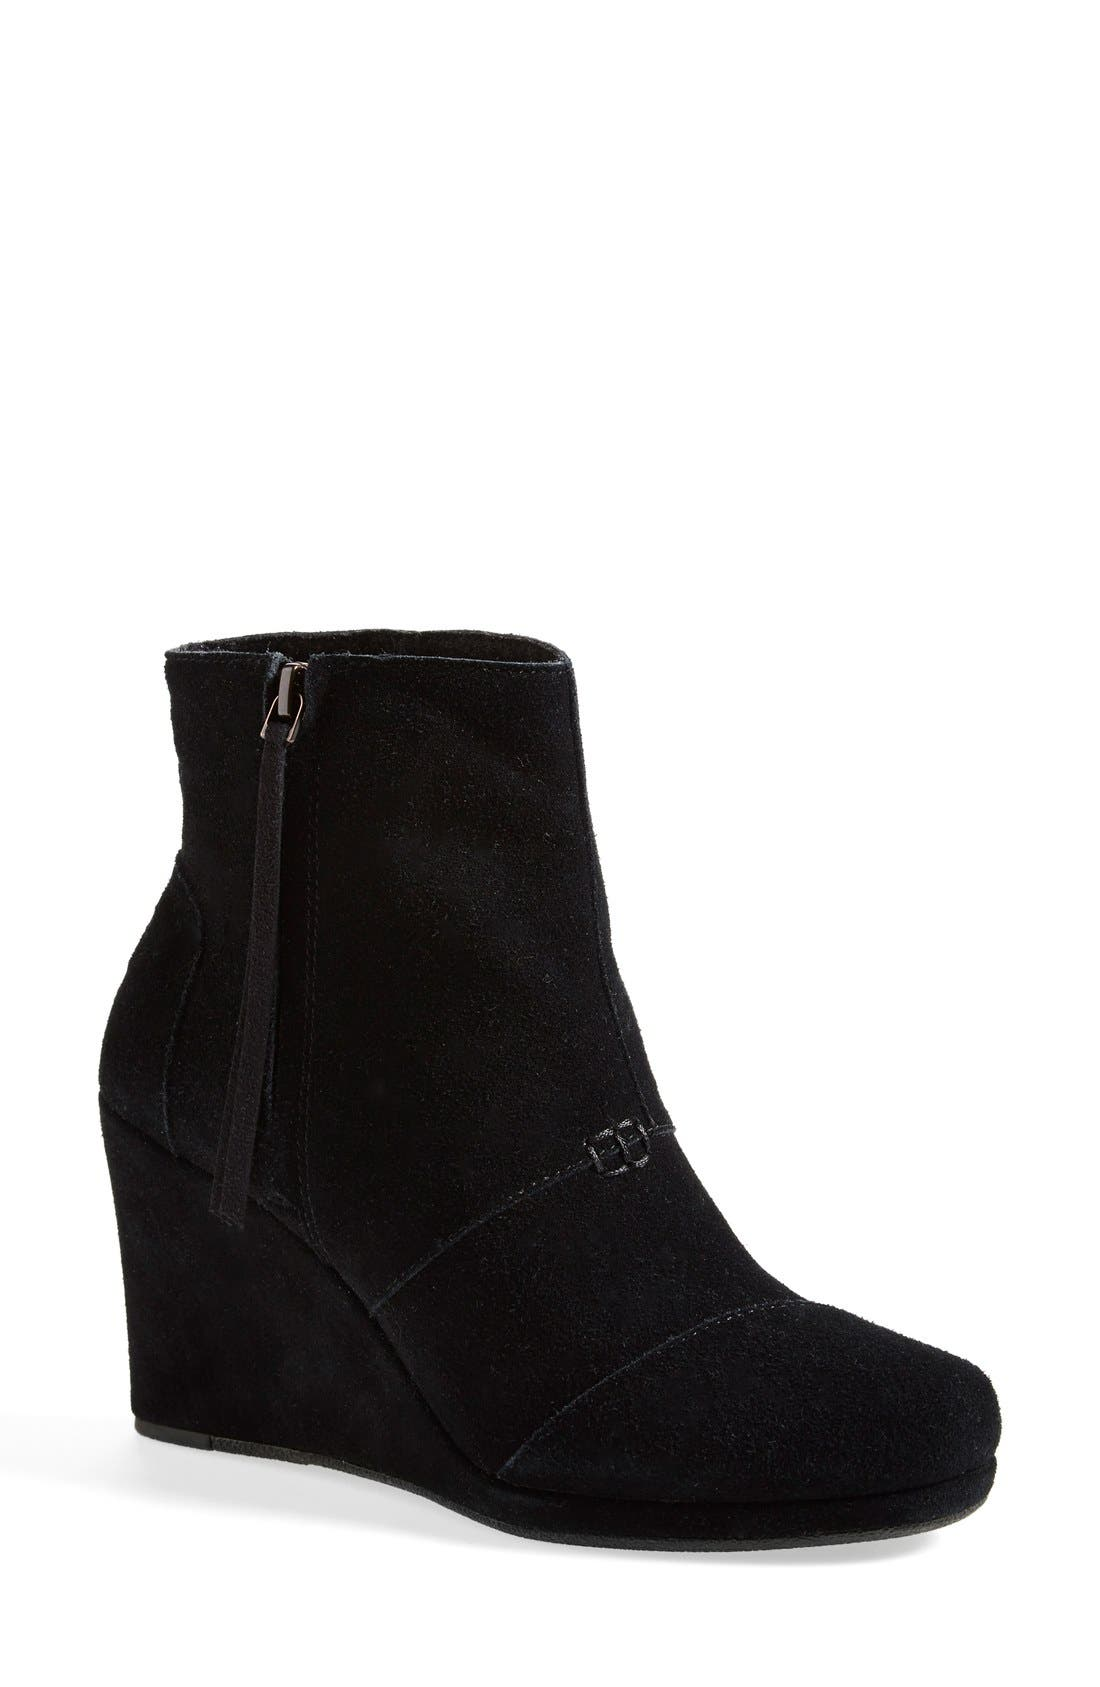 TOMS,                             'Desert' Wedge High Bootie,                             Main thumbnail 1, color,                             001